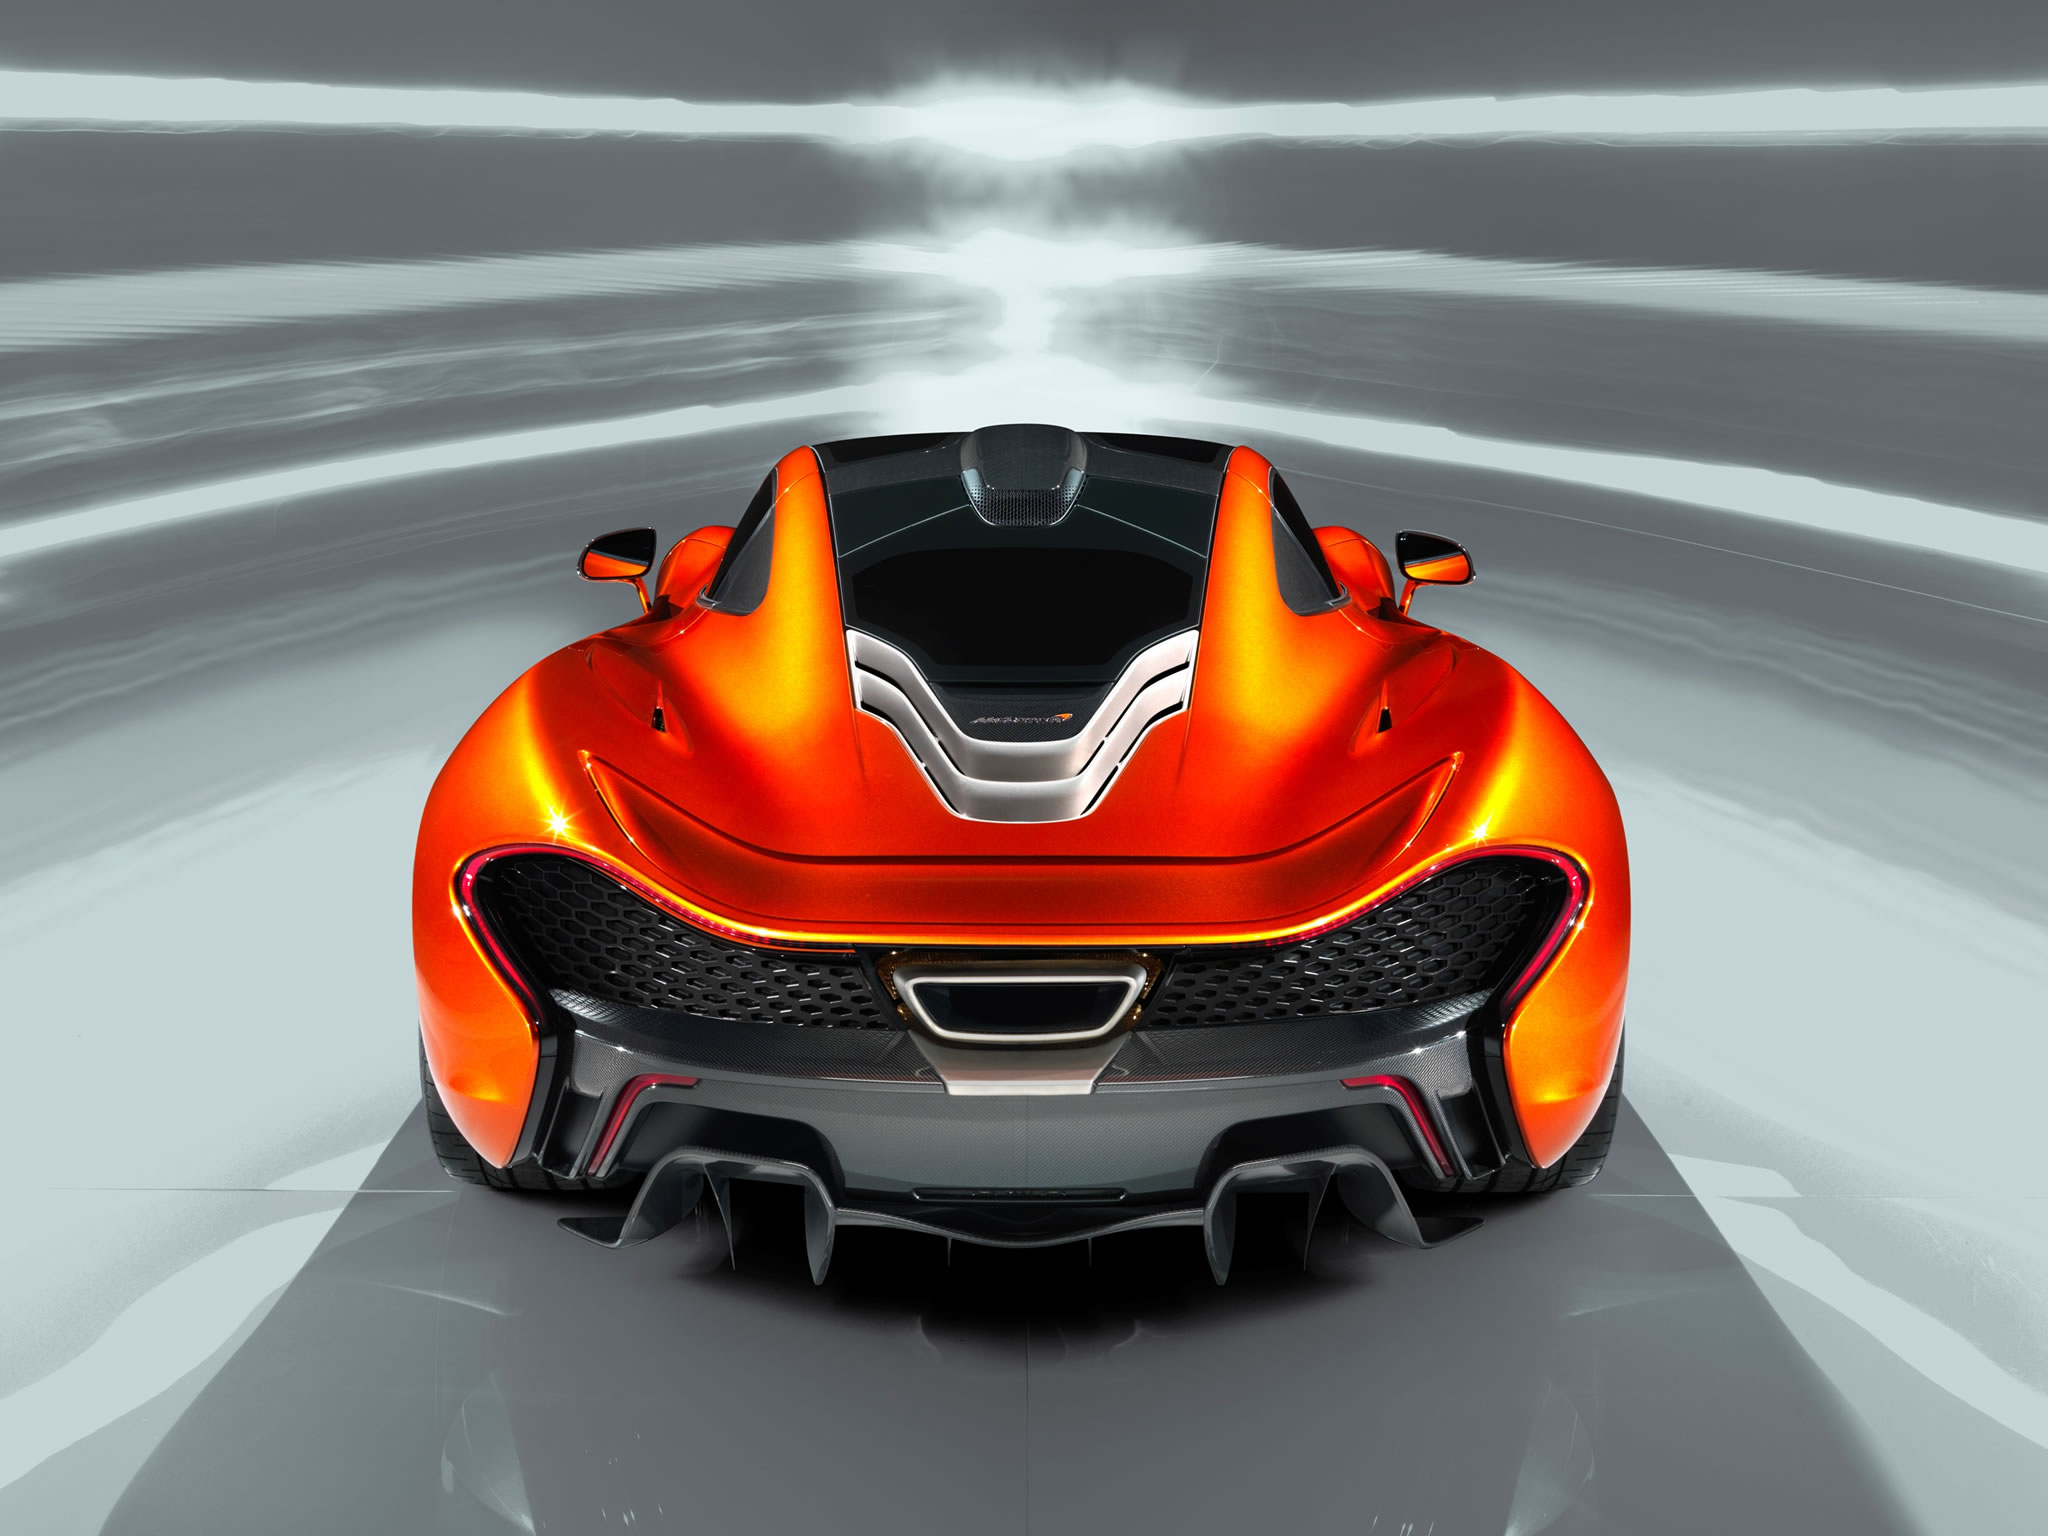 2014 McLaren P1 rear photo Volcano Orange color size 2048 x 1536